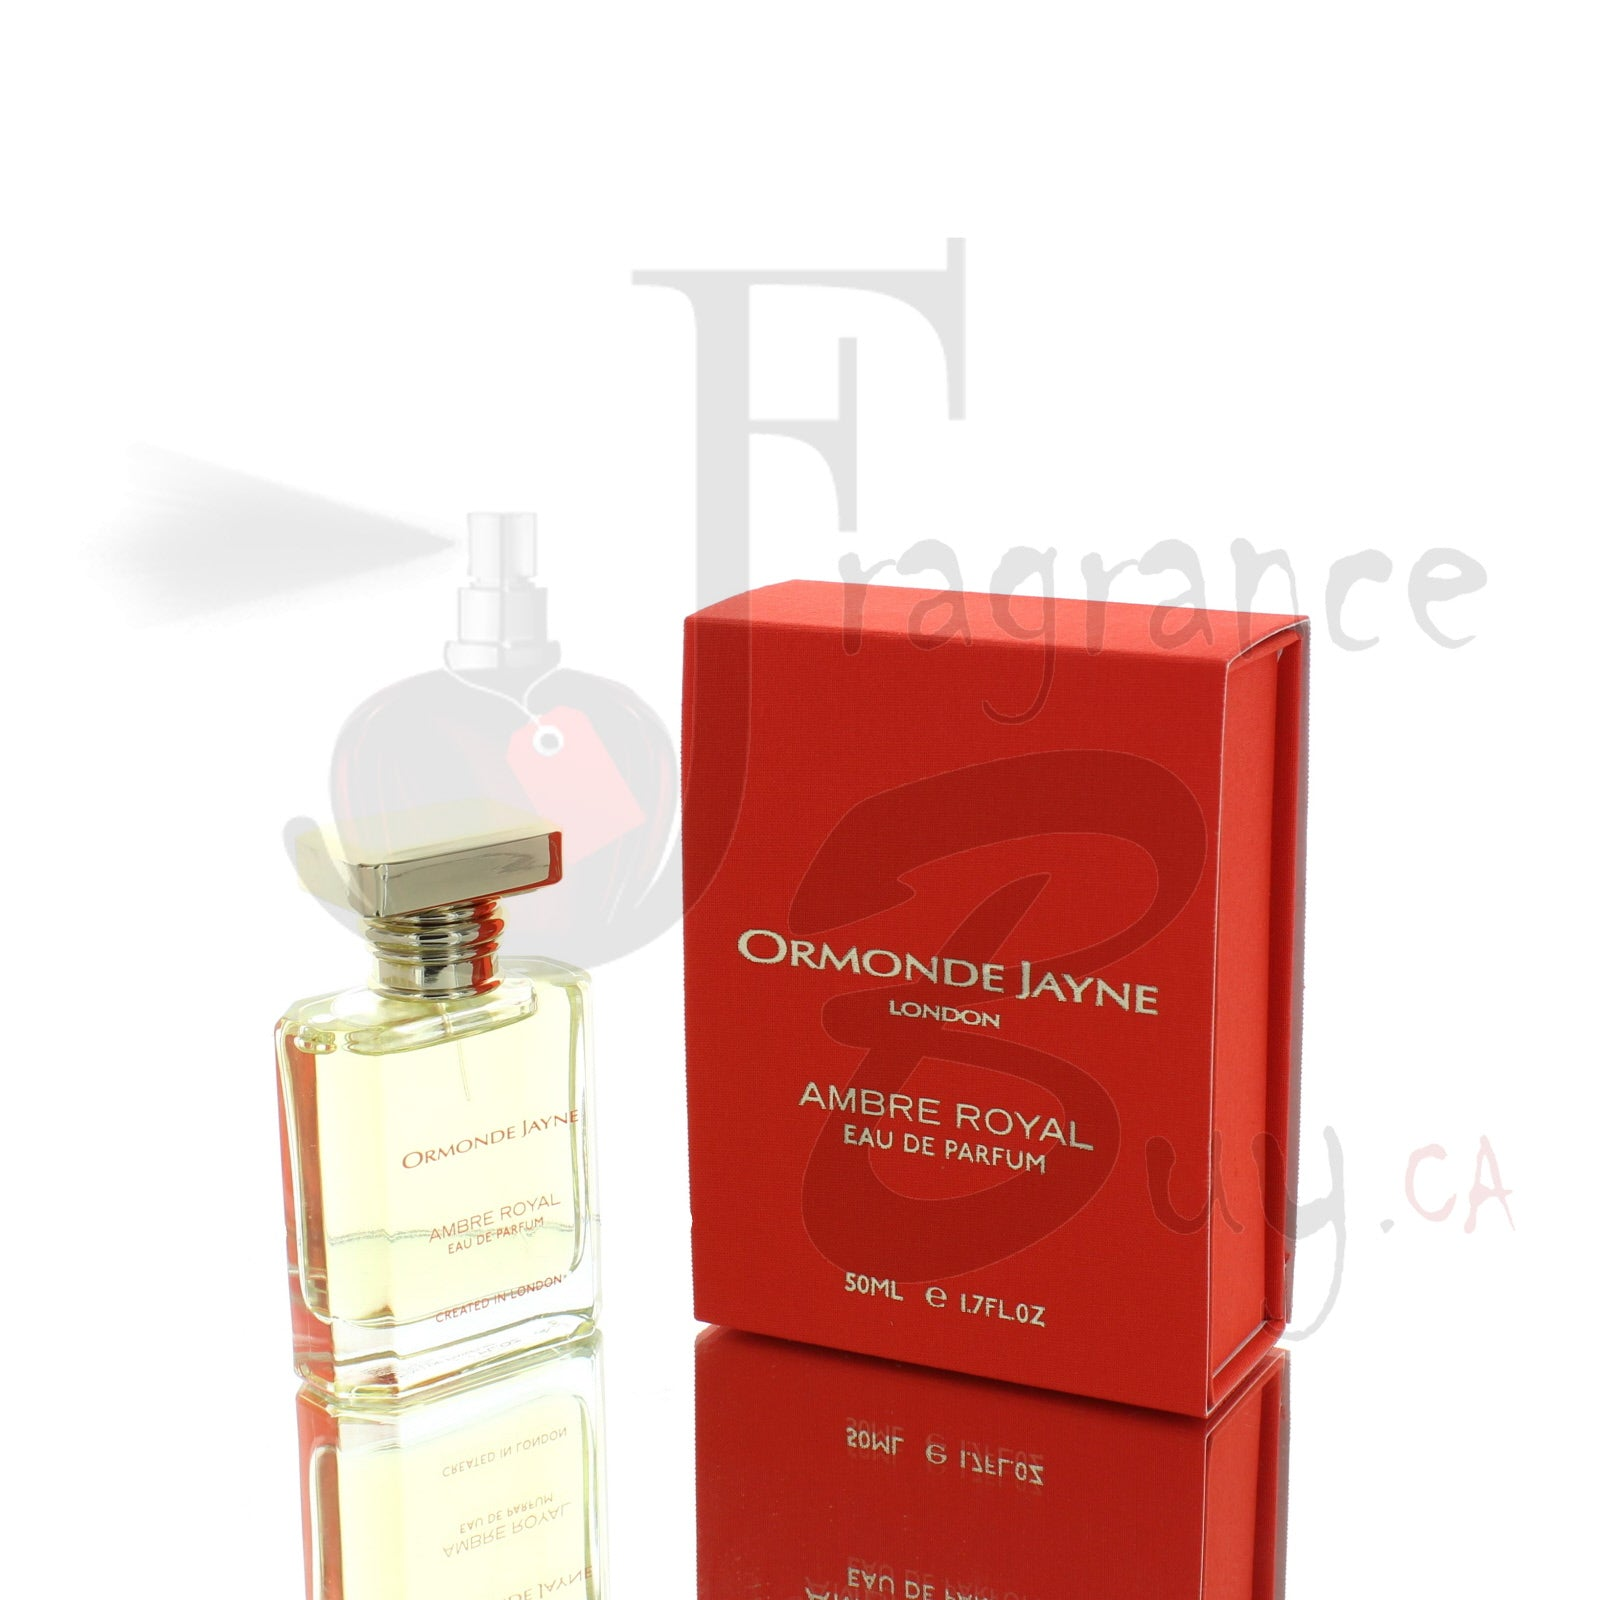 Ormonde Jayne Amber Royal Man/Woman